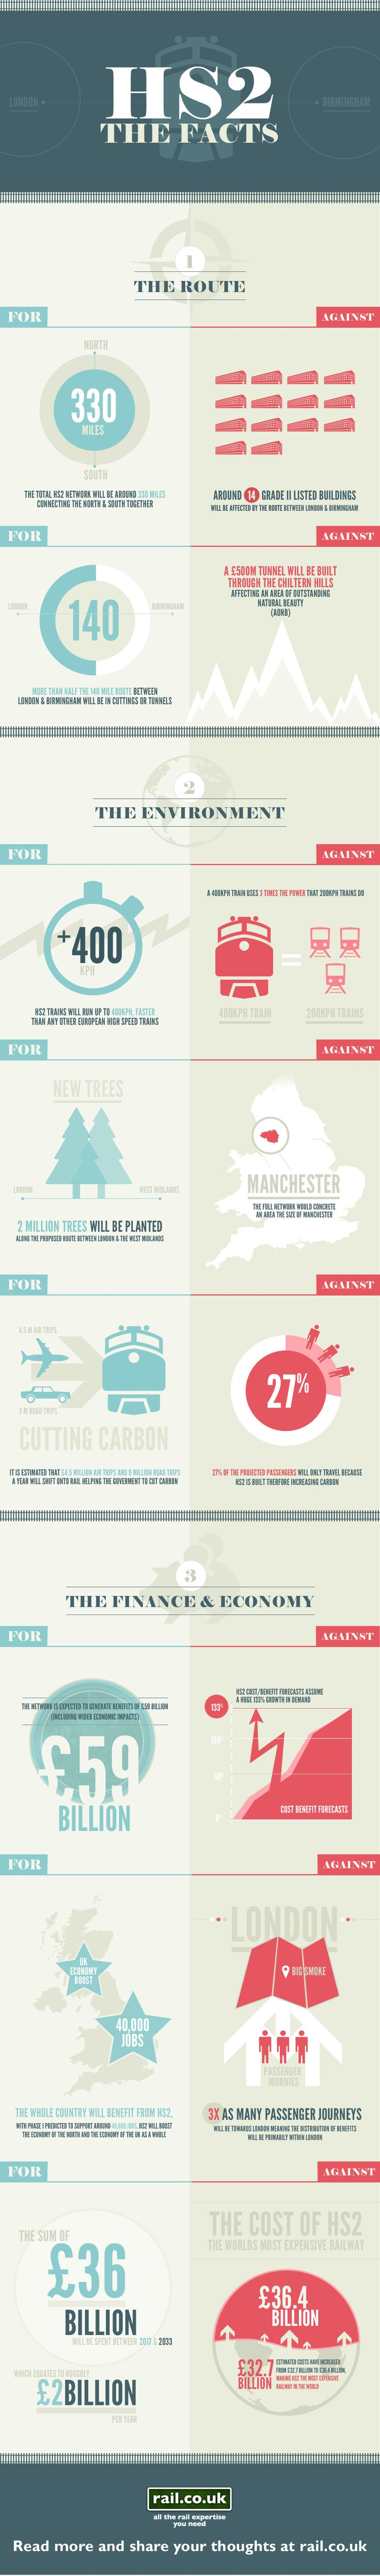 HS2 The Facts | Rail.co.uk